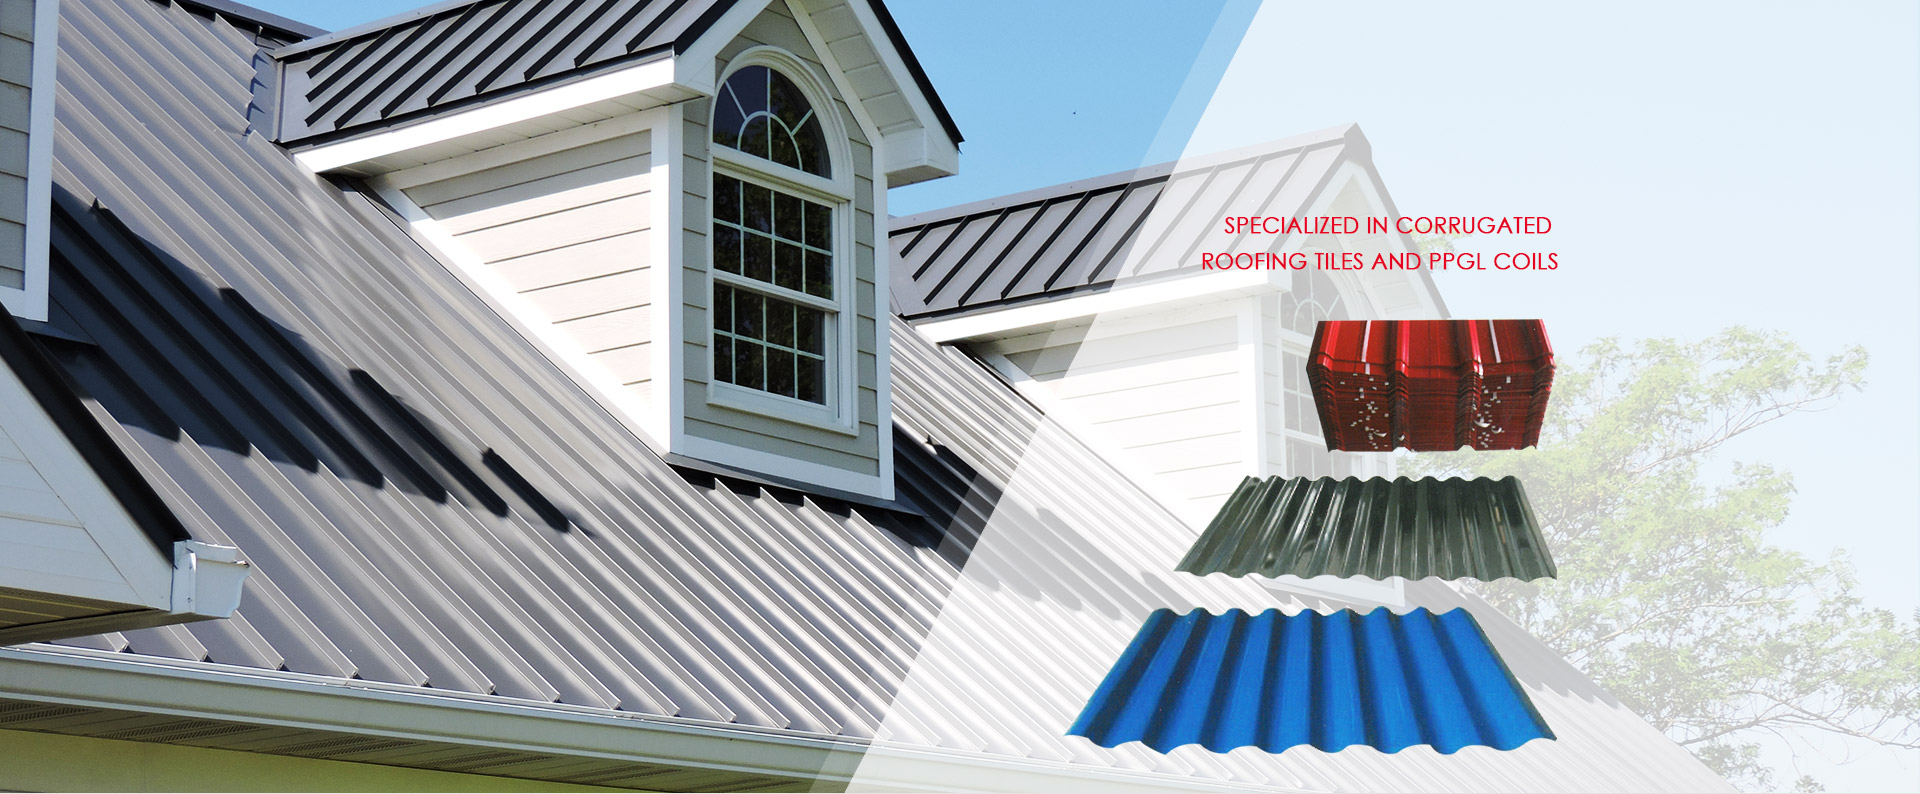 Color Steel Roofing Price List Philippines Supplier Manufacturer Dwl Powerson Metal Powerson Metal